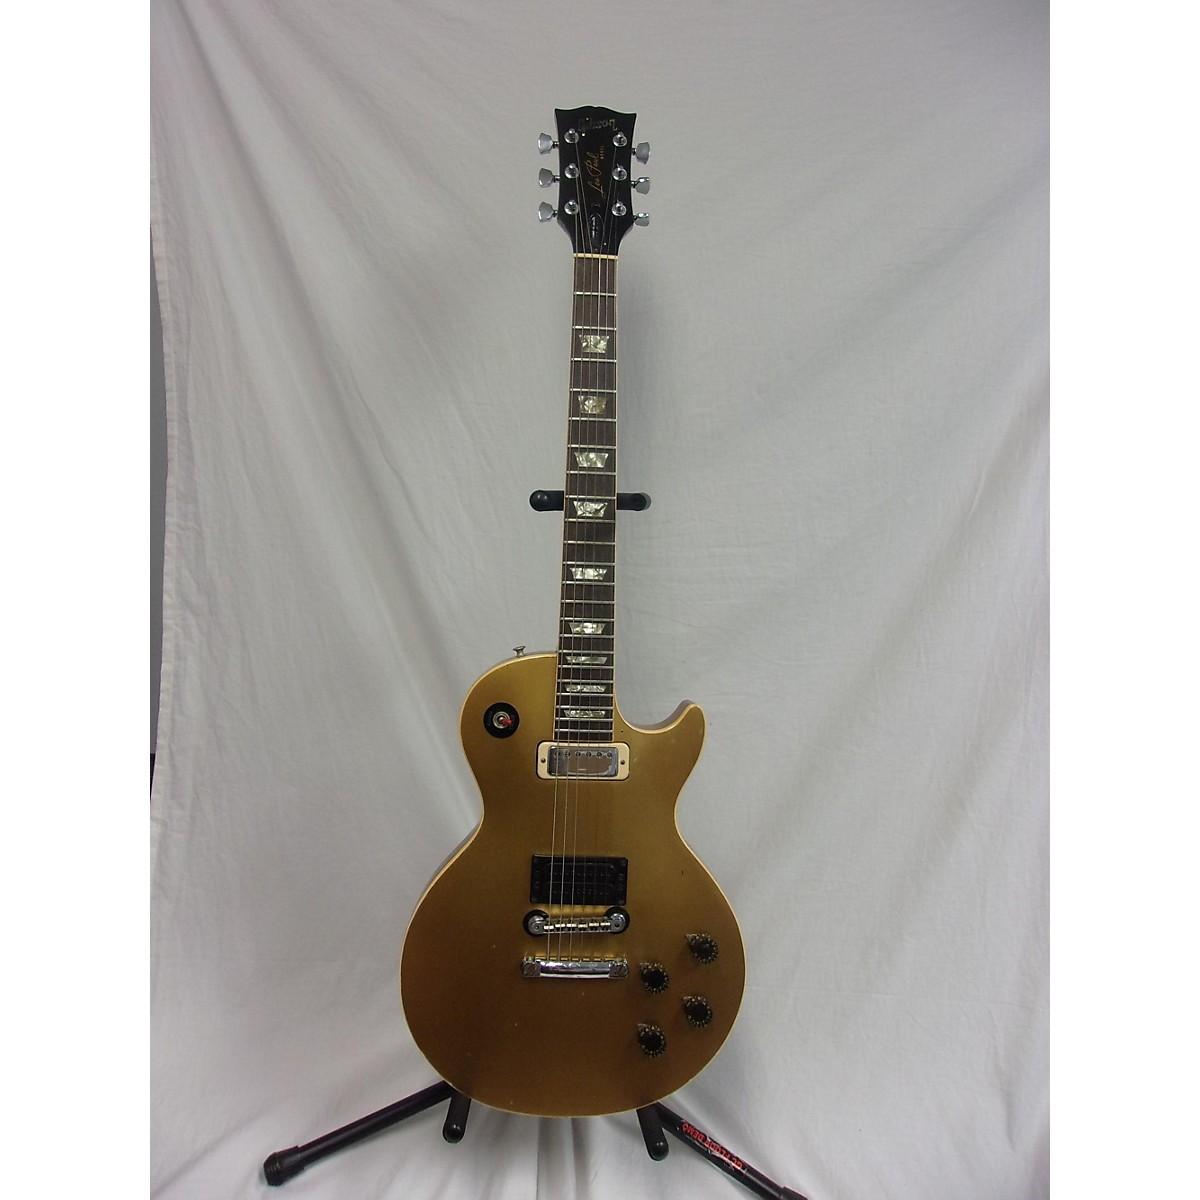 Gibson 1974 Les Paul Deluxe Solid Body Electric Guitar